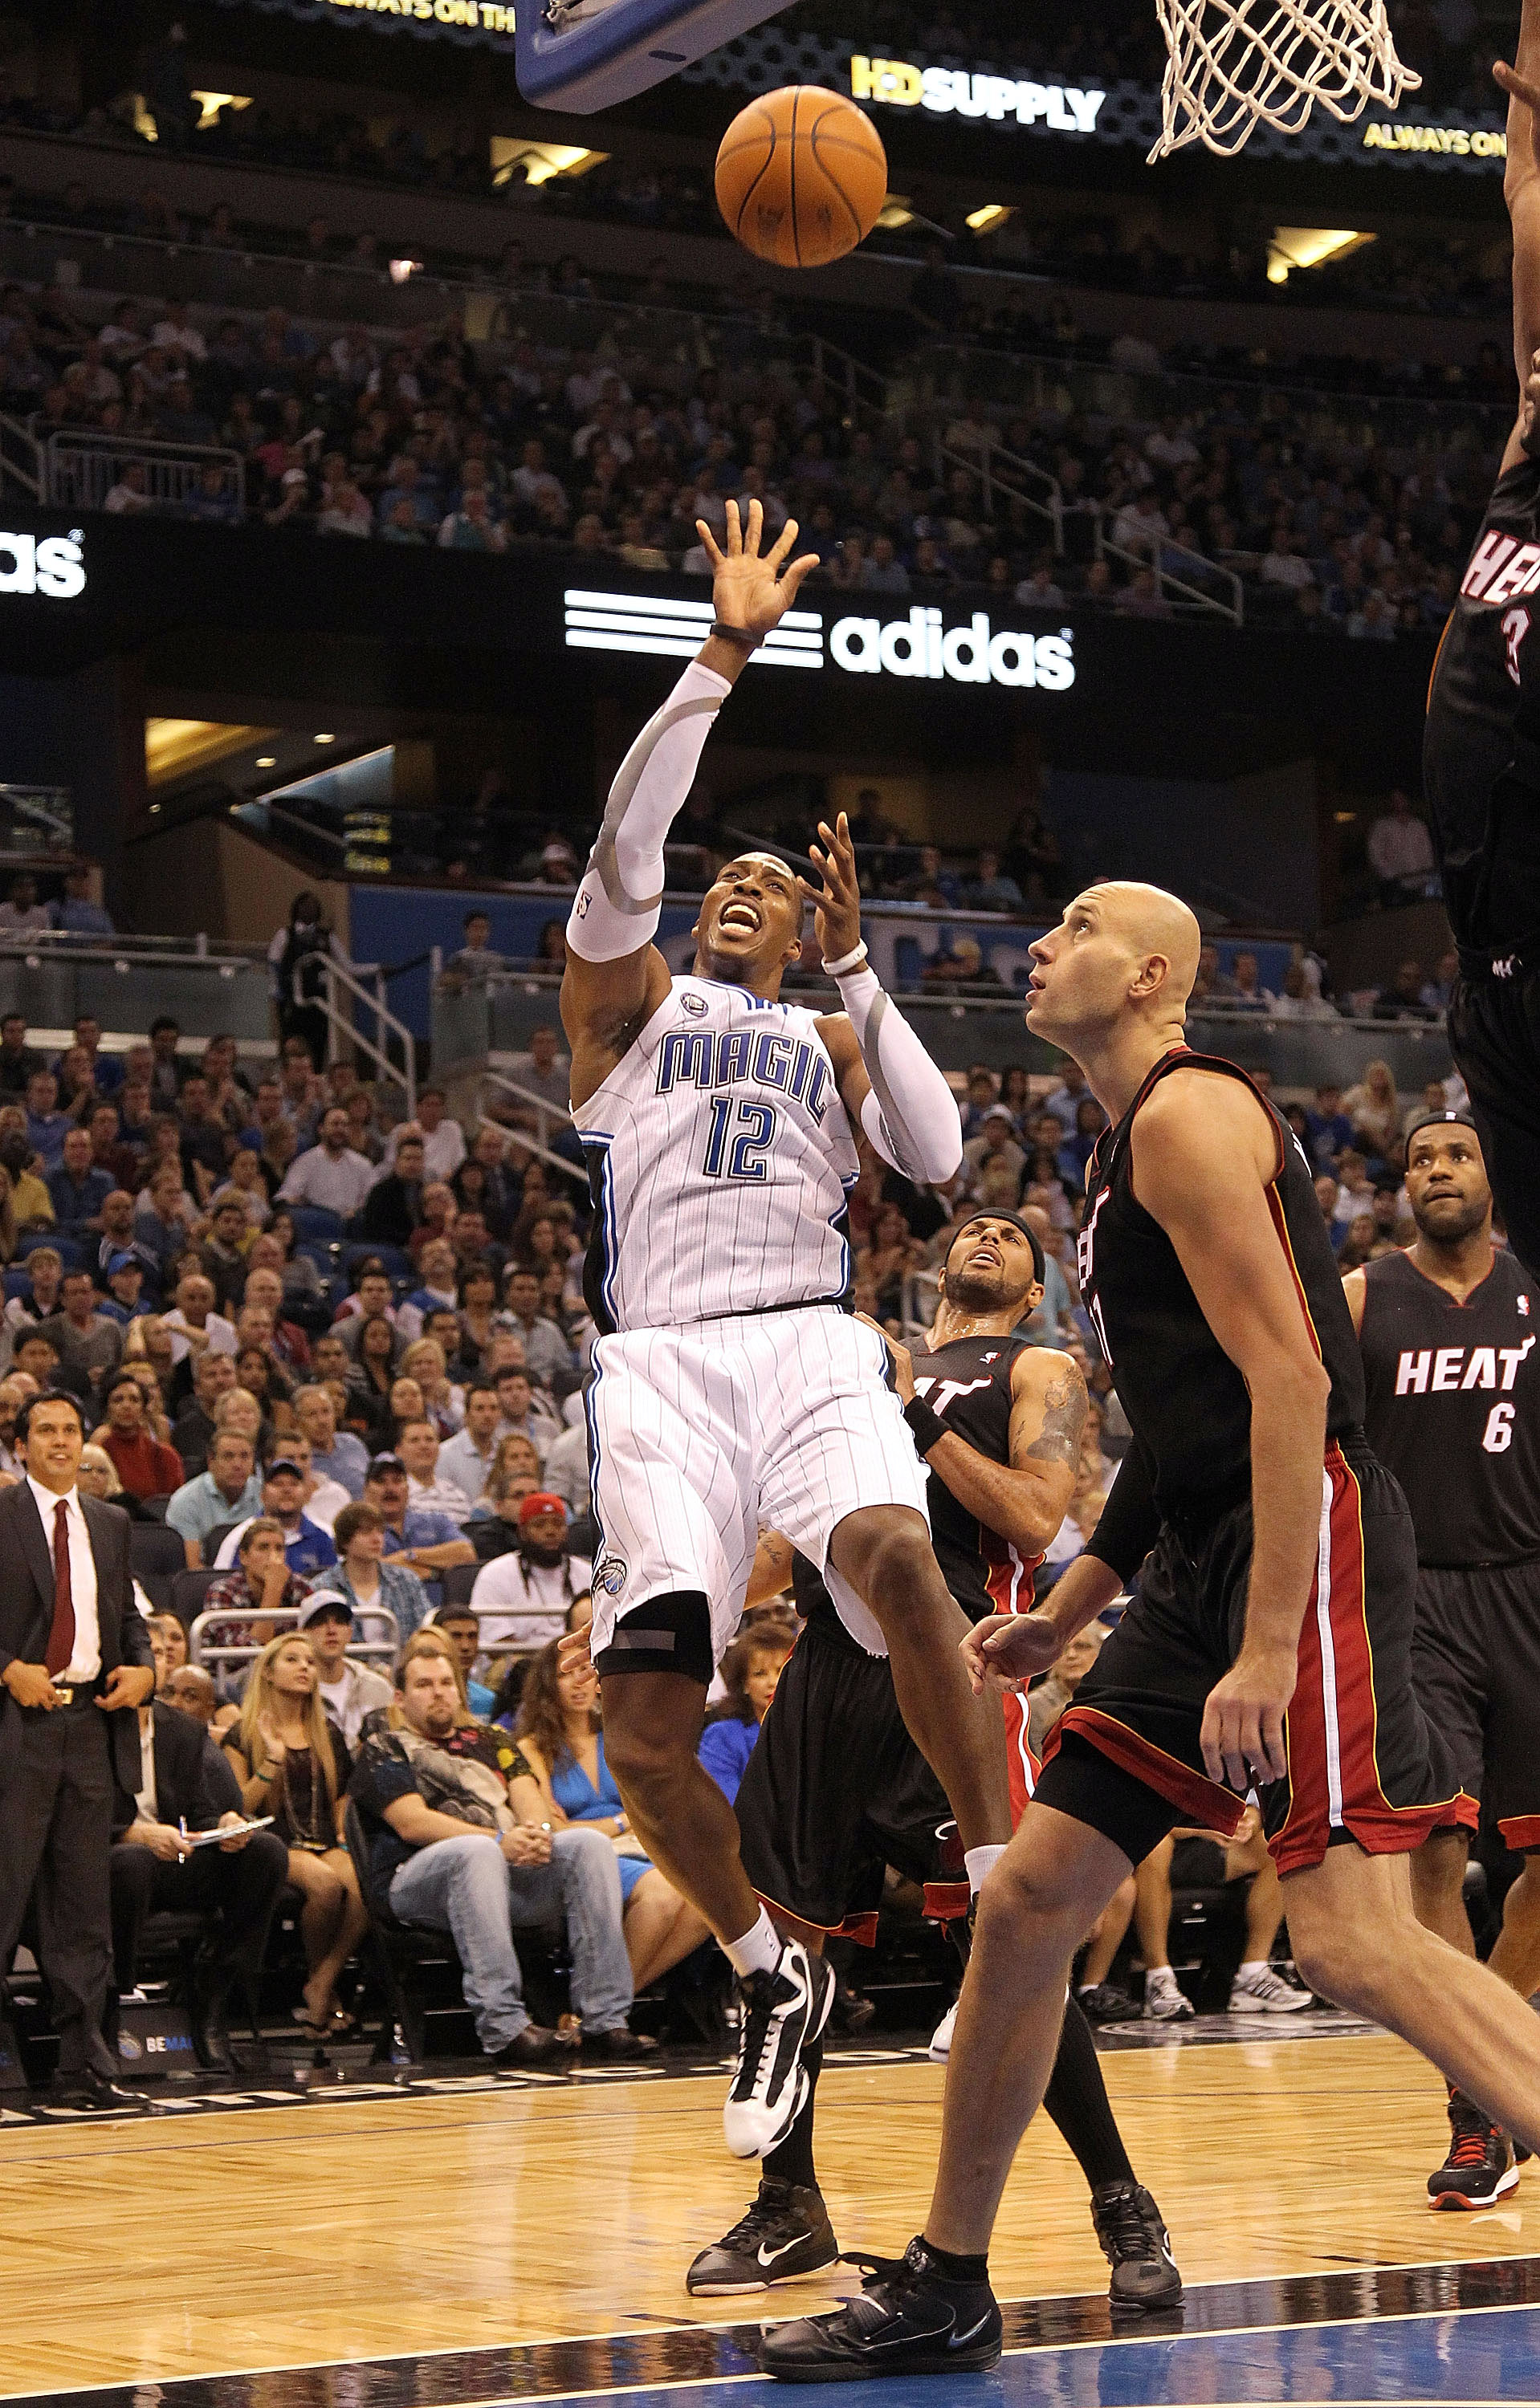 ORLANDO, FL - NOVEMBER 24:  Dwight Howard #12 of the Orlando Magic shoots over Zydrunas Ilgauskas #11 of the Miami Heat during a game at Amway Arena on November 24, 2010 in Orlando, Florida. NOTE TO USER: User expressly acknowledges and agrees that, by do